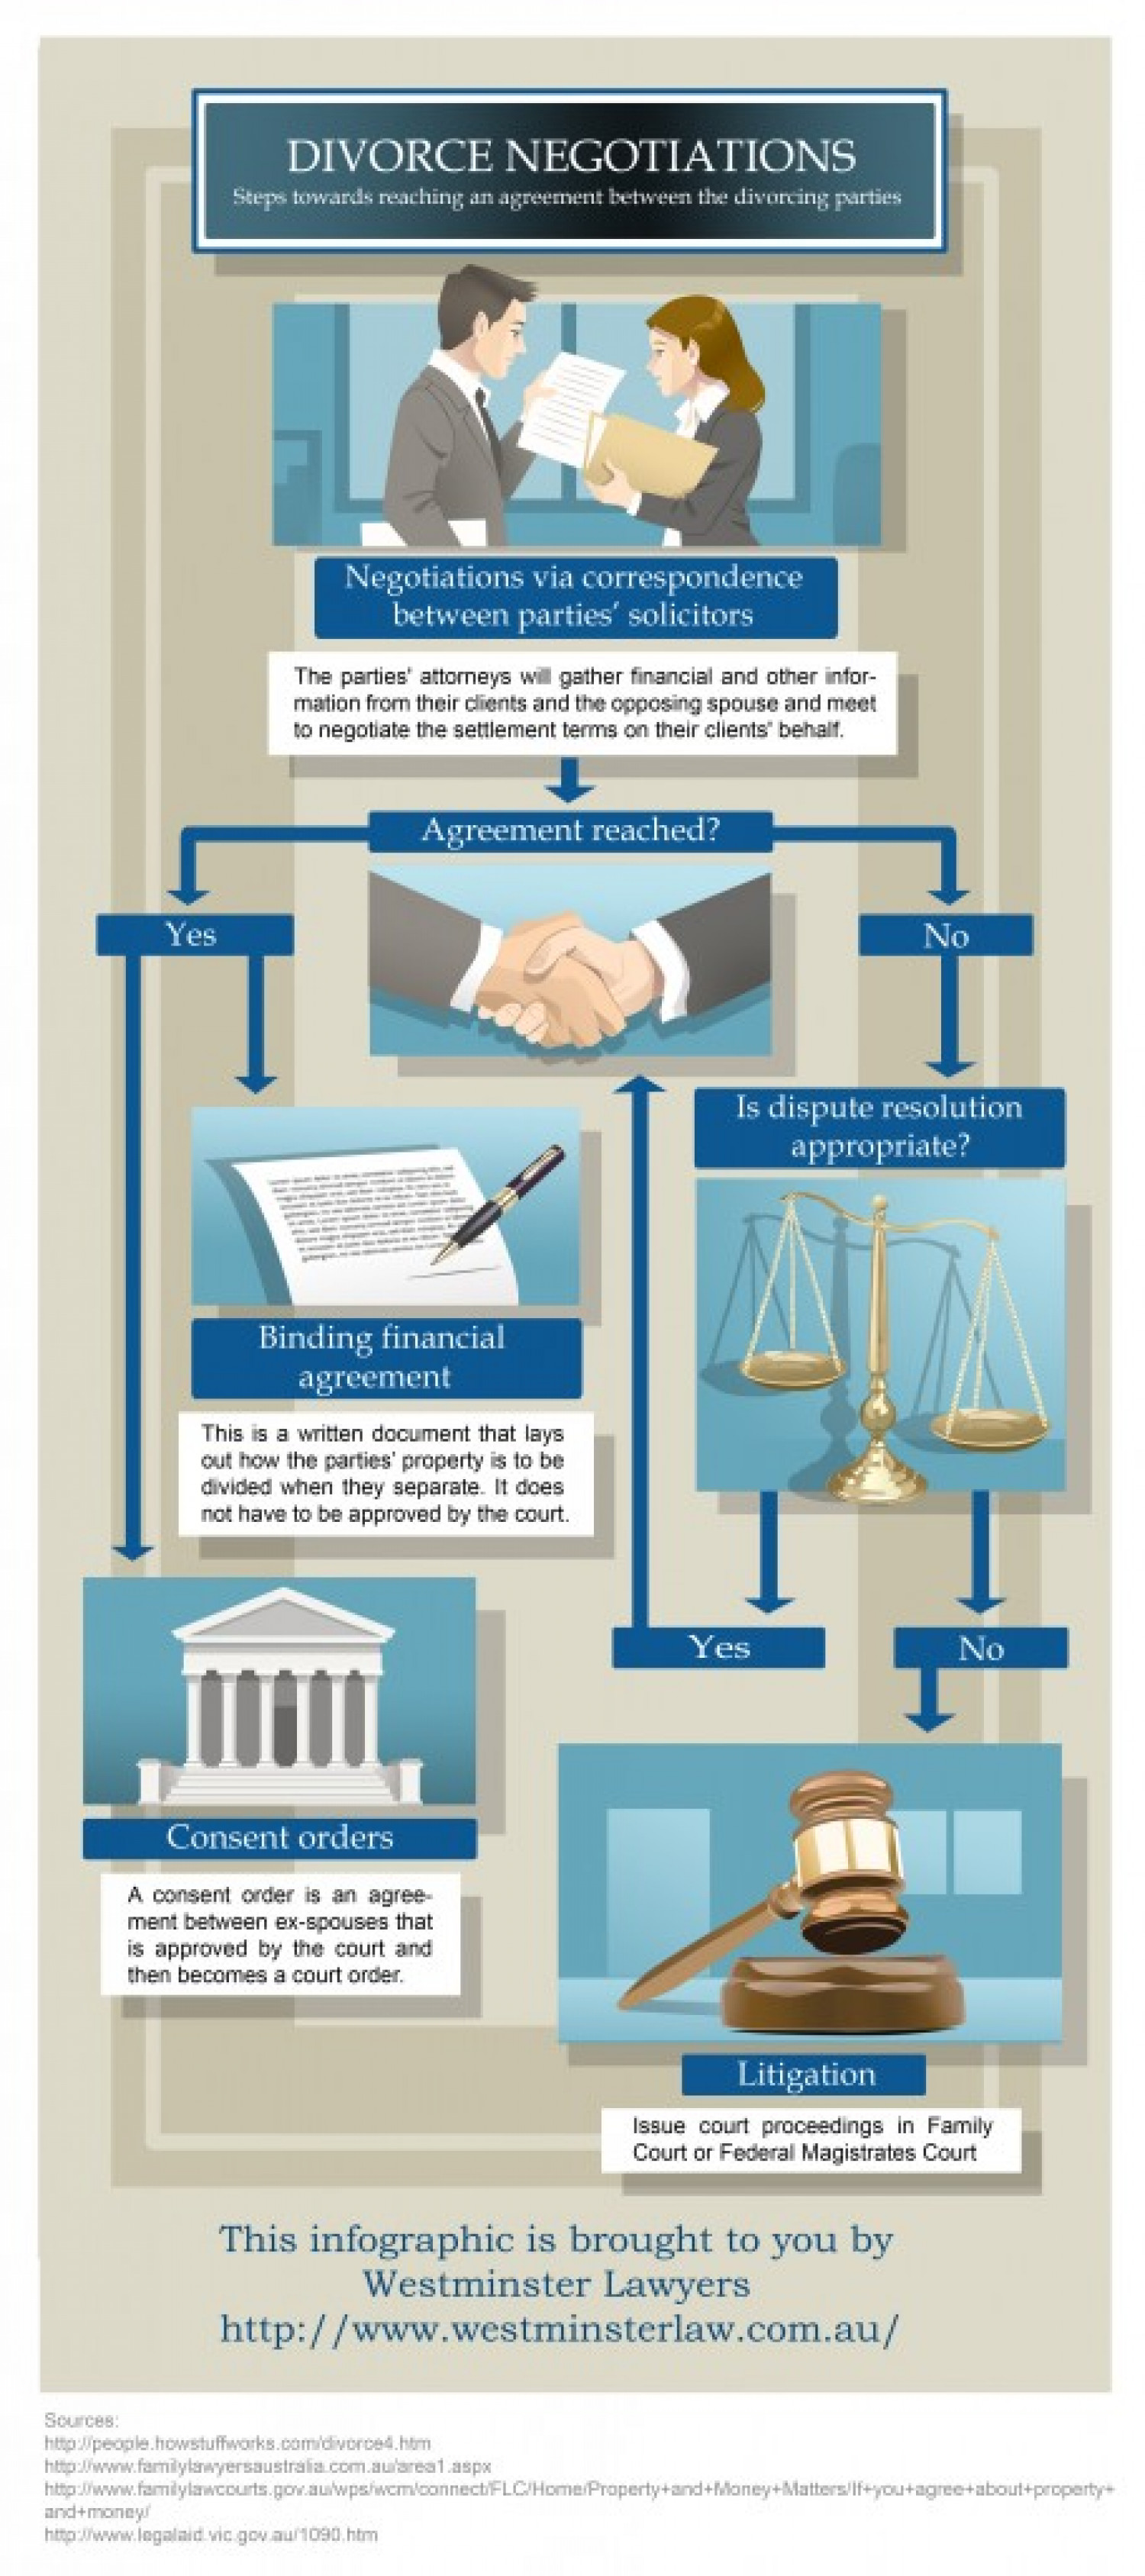 Divorce: Do You Have A Way Out? Infographic